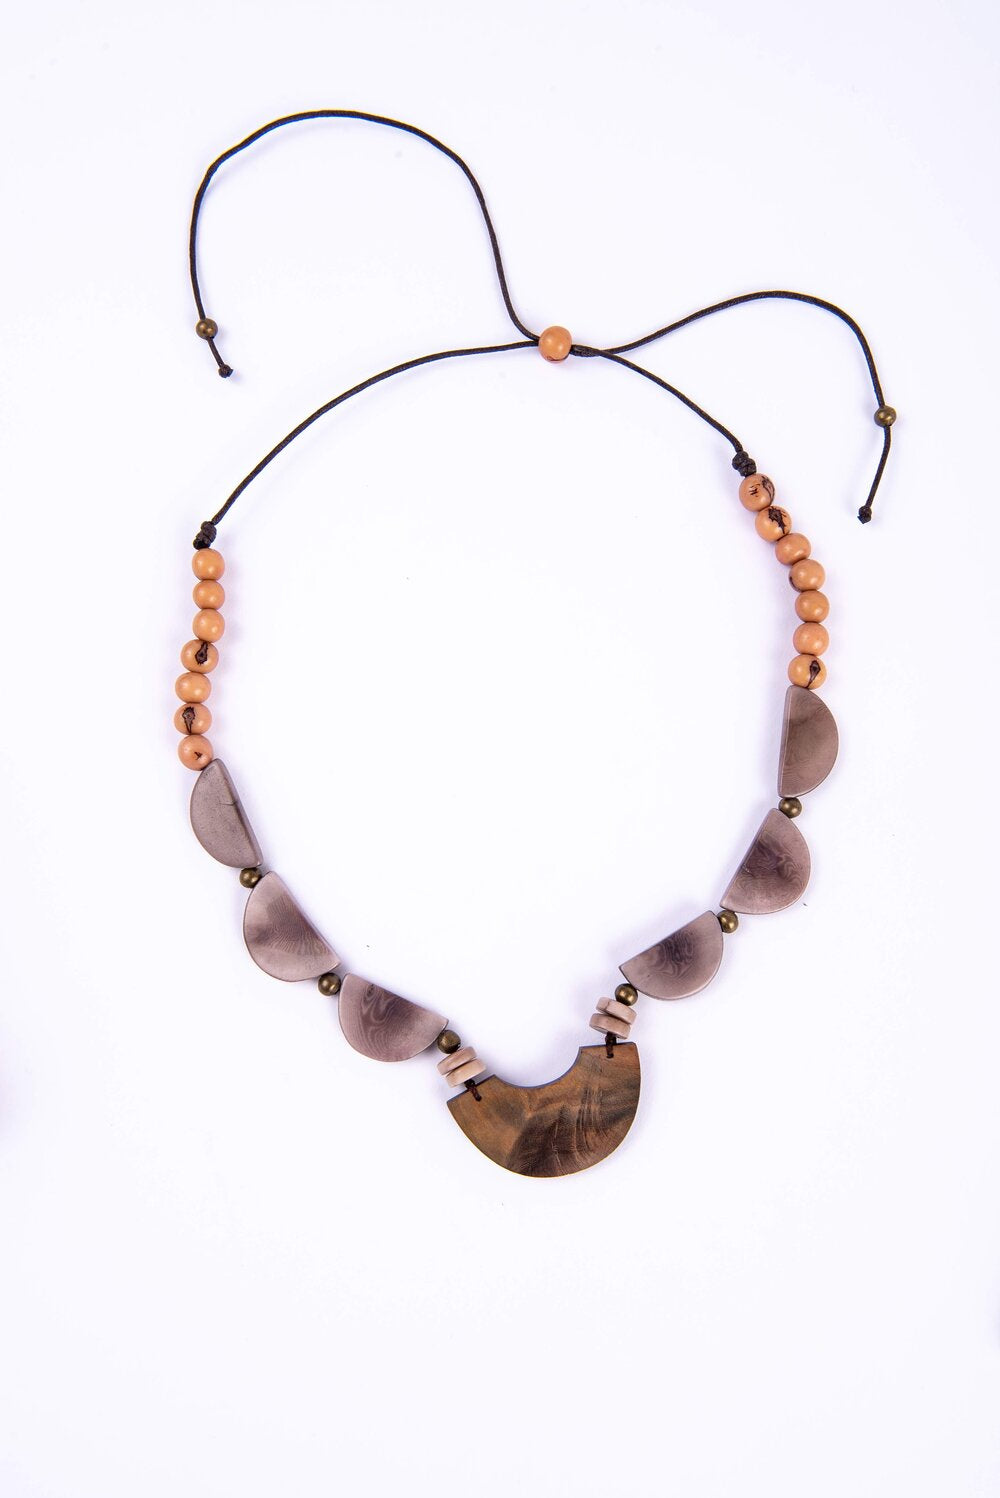 Astonishing necklace made with various stones and seeds with adjustable waxed cotton cord